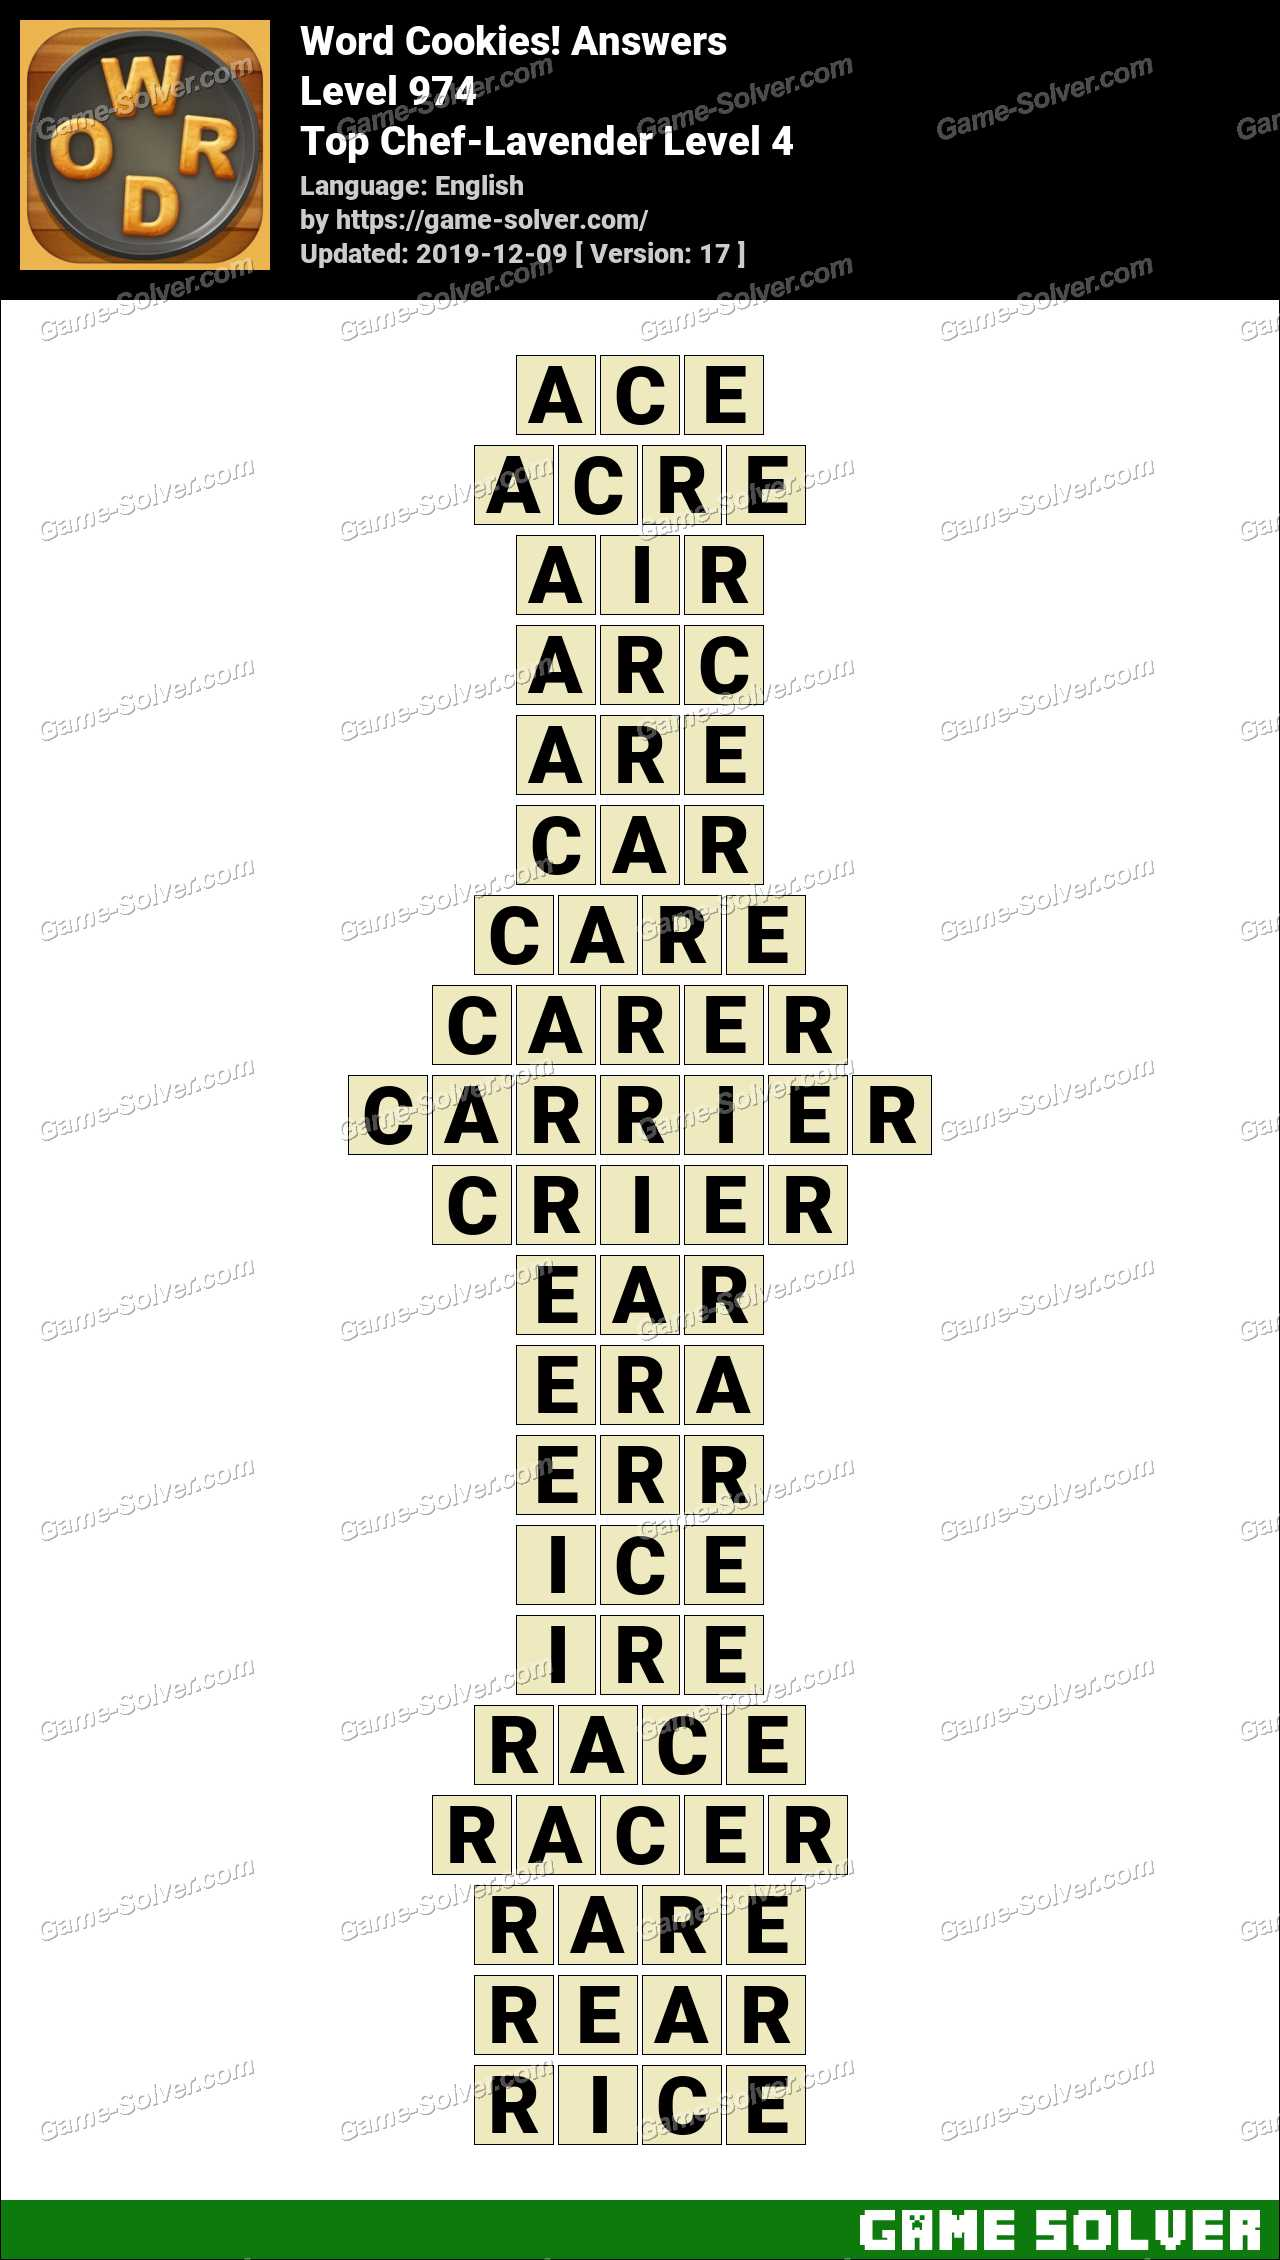 Word Cookies Top Chef-Lavender Level 4 Answers